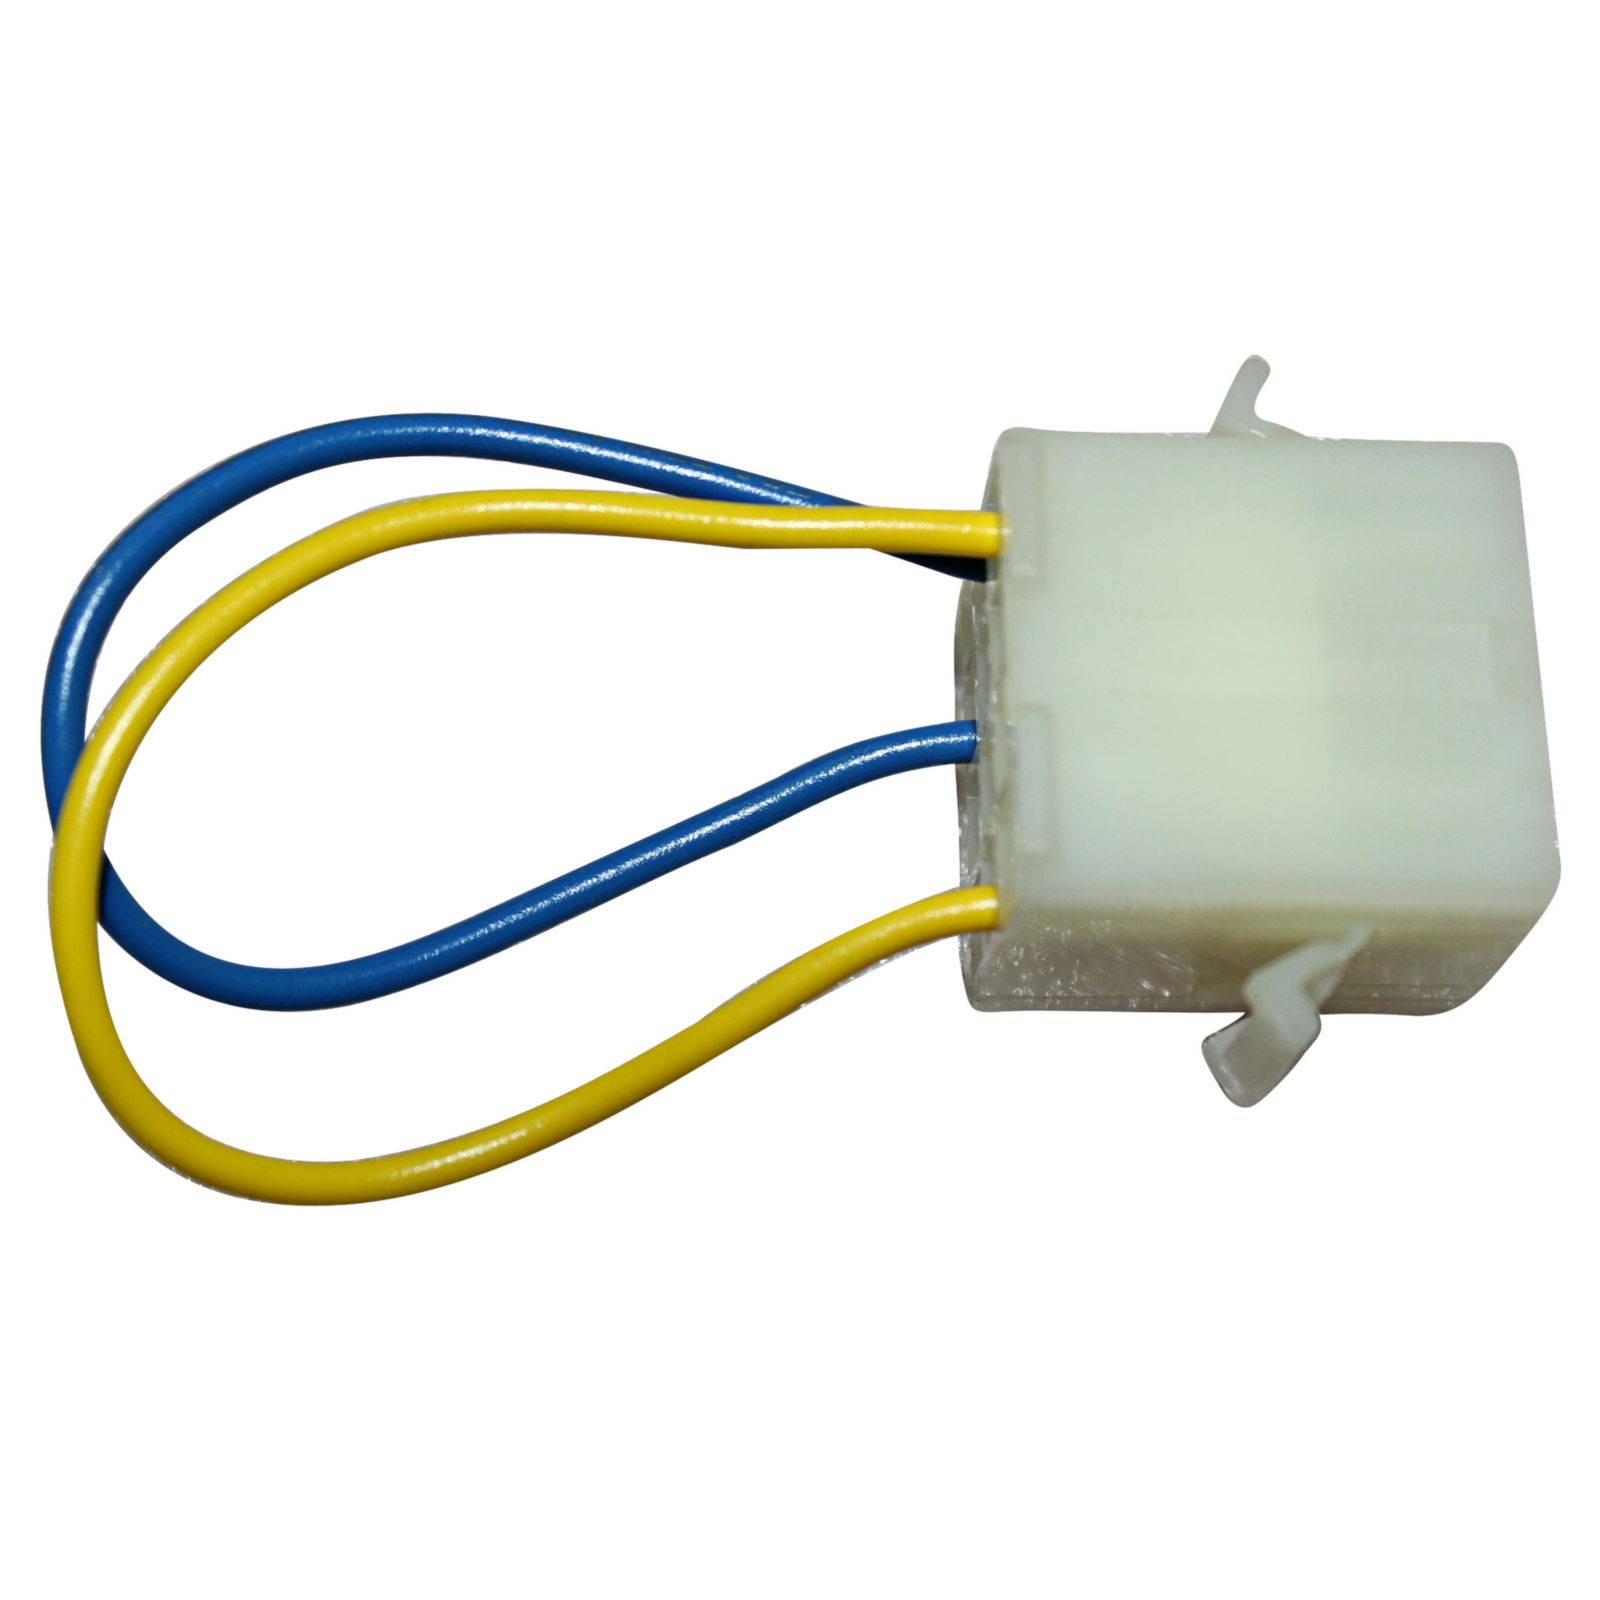 RCD Parts 50HJ400345 Economizers and Adapters | Carrier HVAC